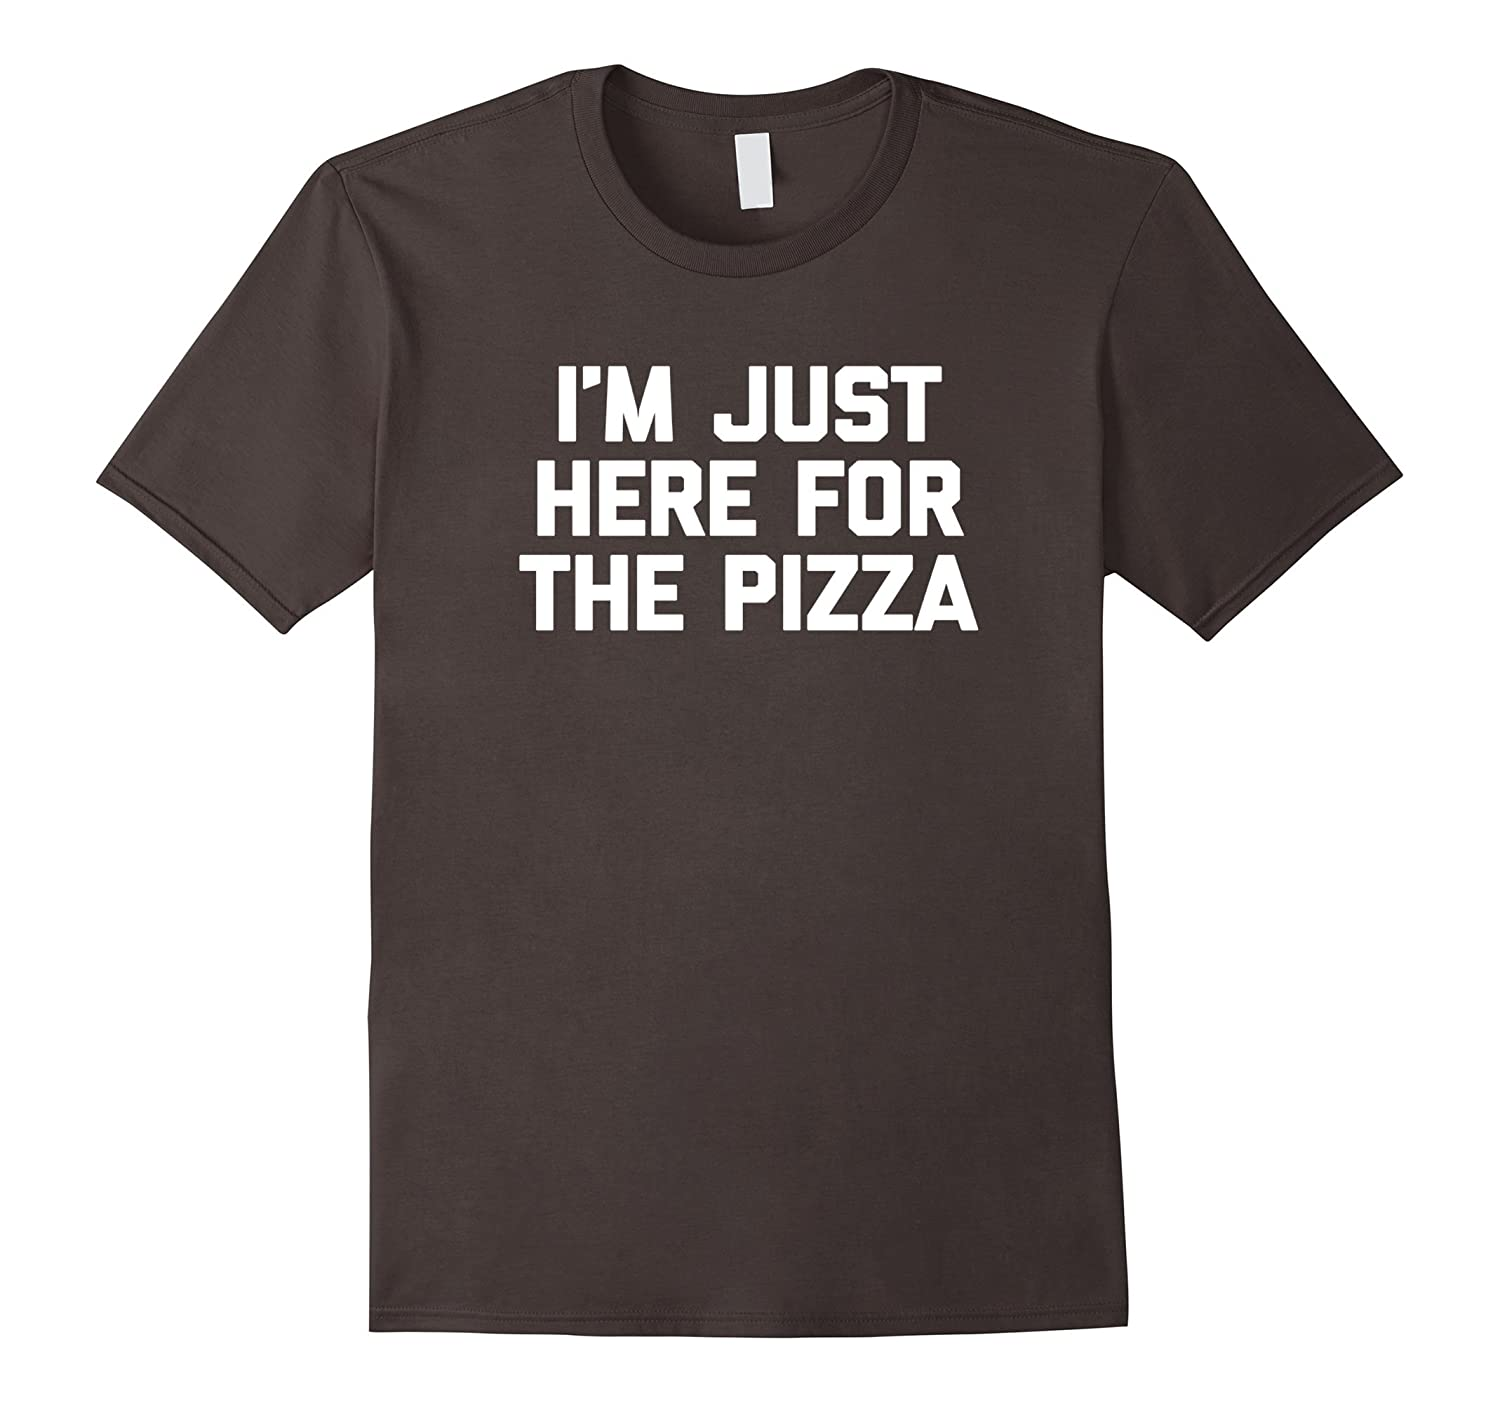 Funny Pizza Shirt: I'm Just Here For The Pizza T-Shirt funny-ANZ